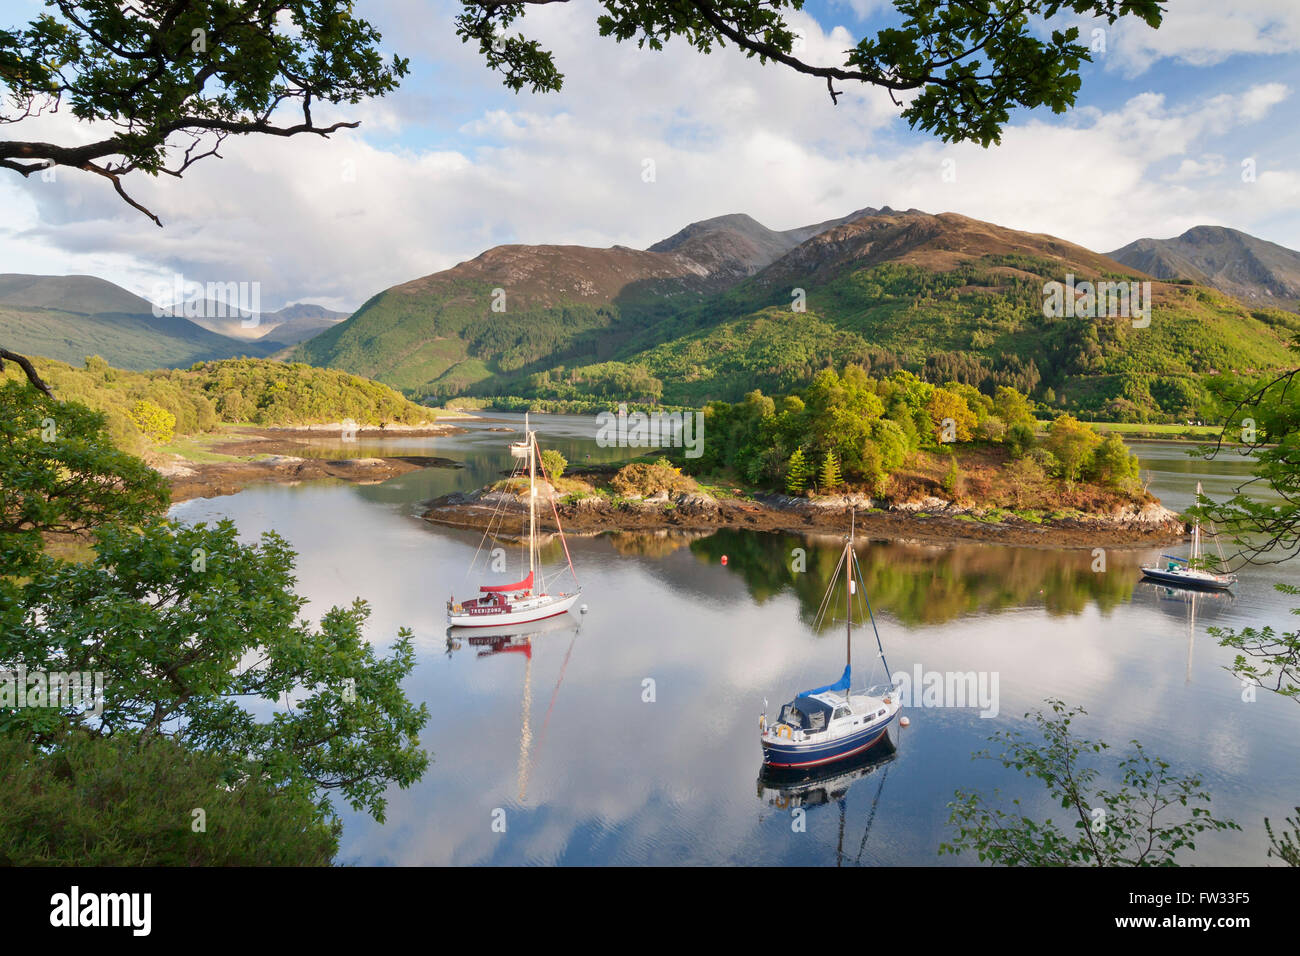 Loch Leven, Bishop's Bay, Scottish Highlands, Scotland, United Kingdom - Stock Image